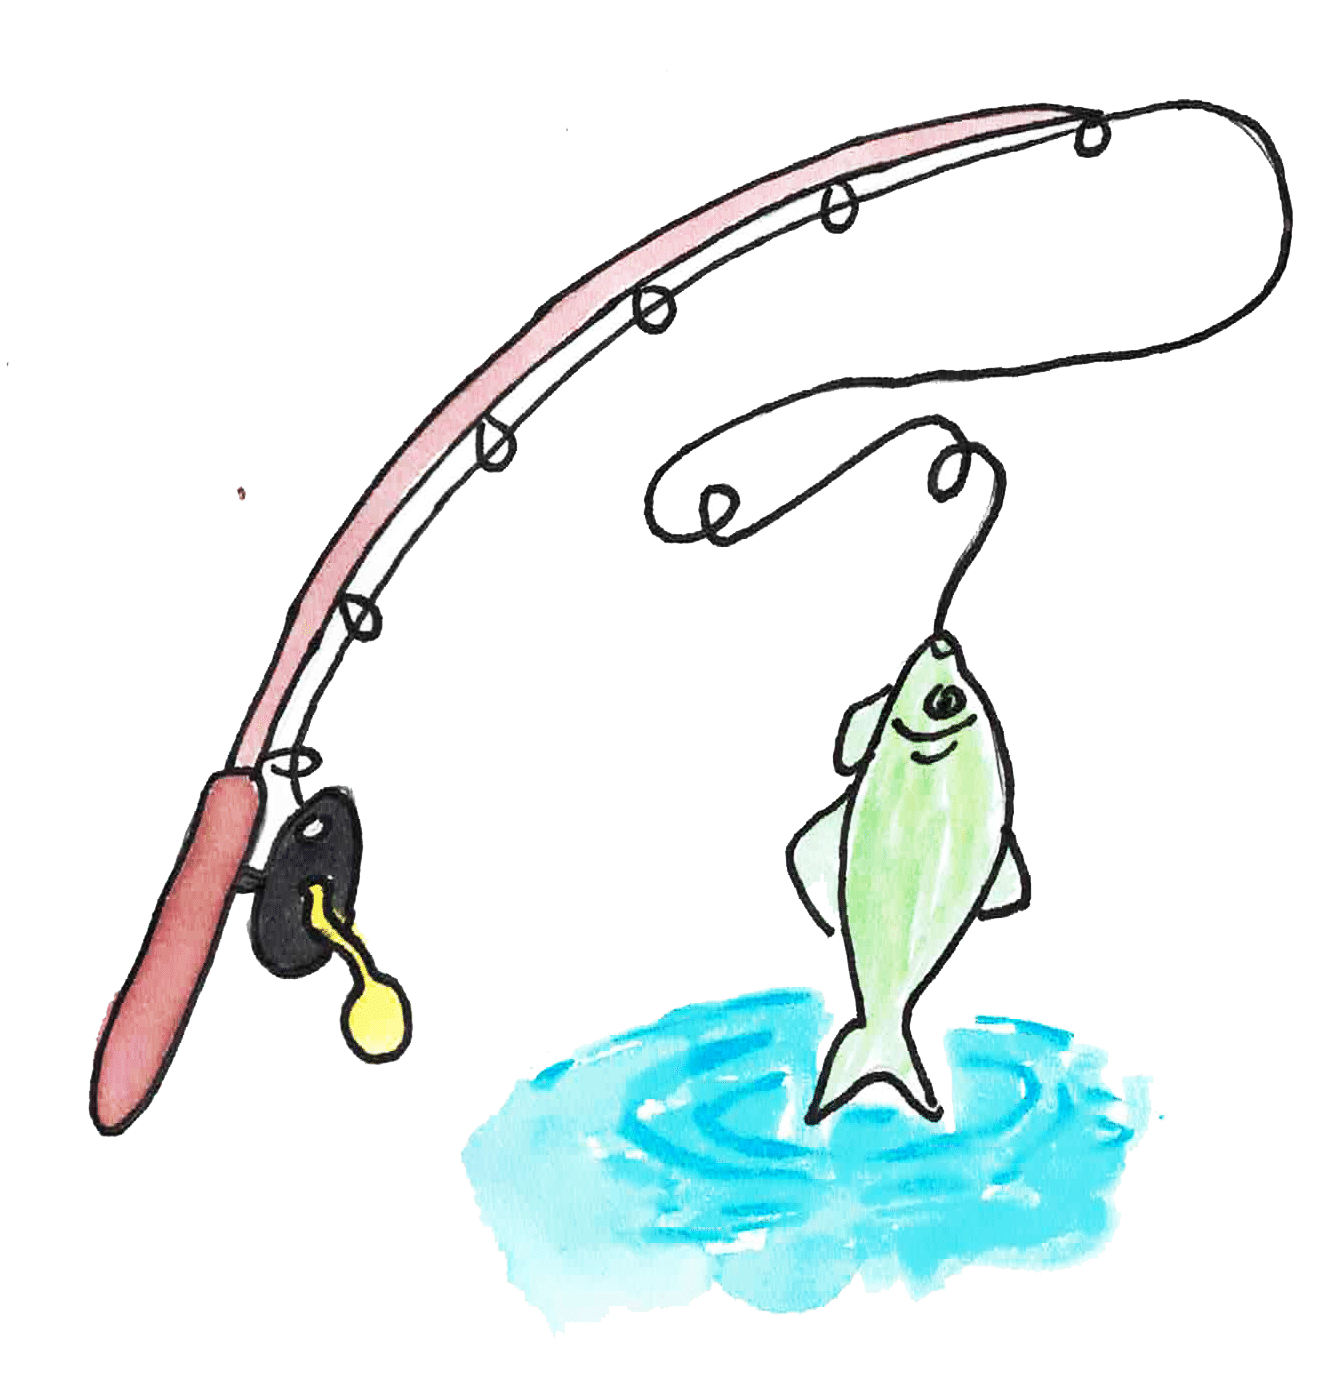 Persuading is like Fishing